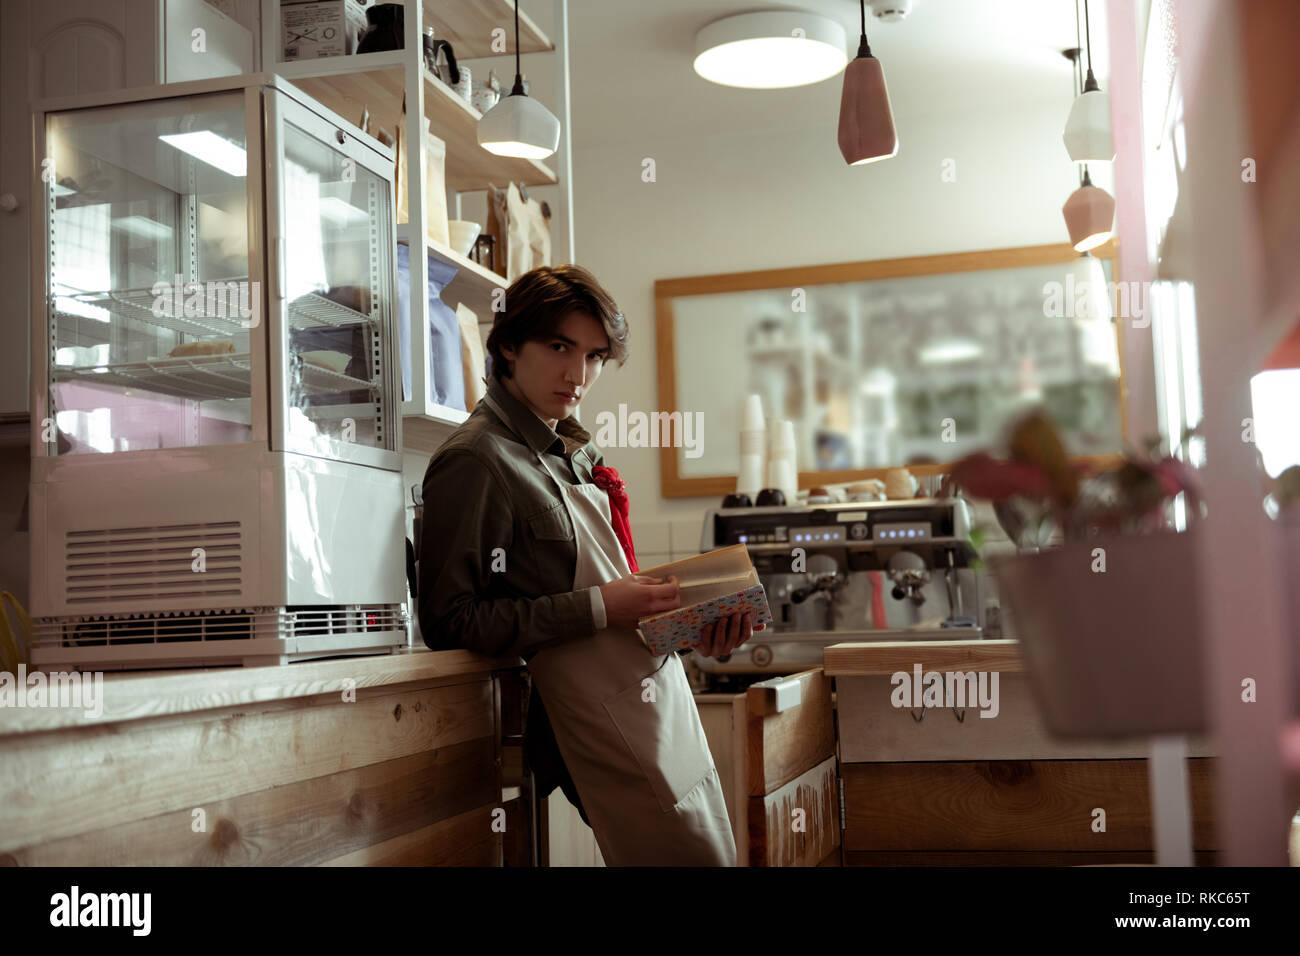 Concentrated good-looking man with heavy gaze having break in cafe - Stock Image